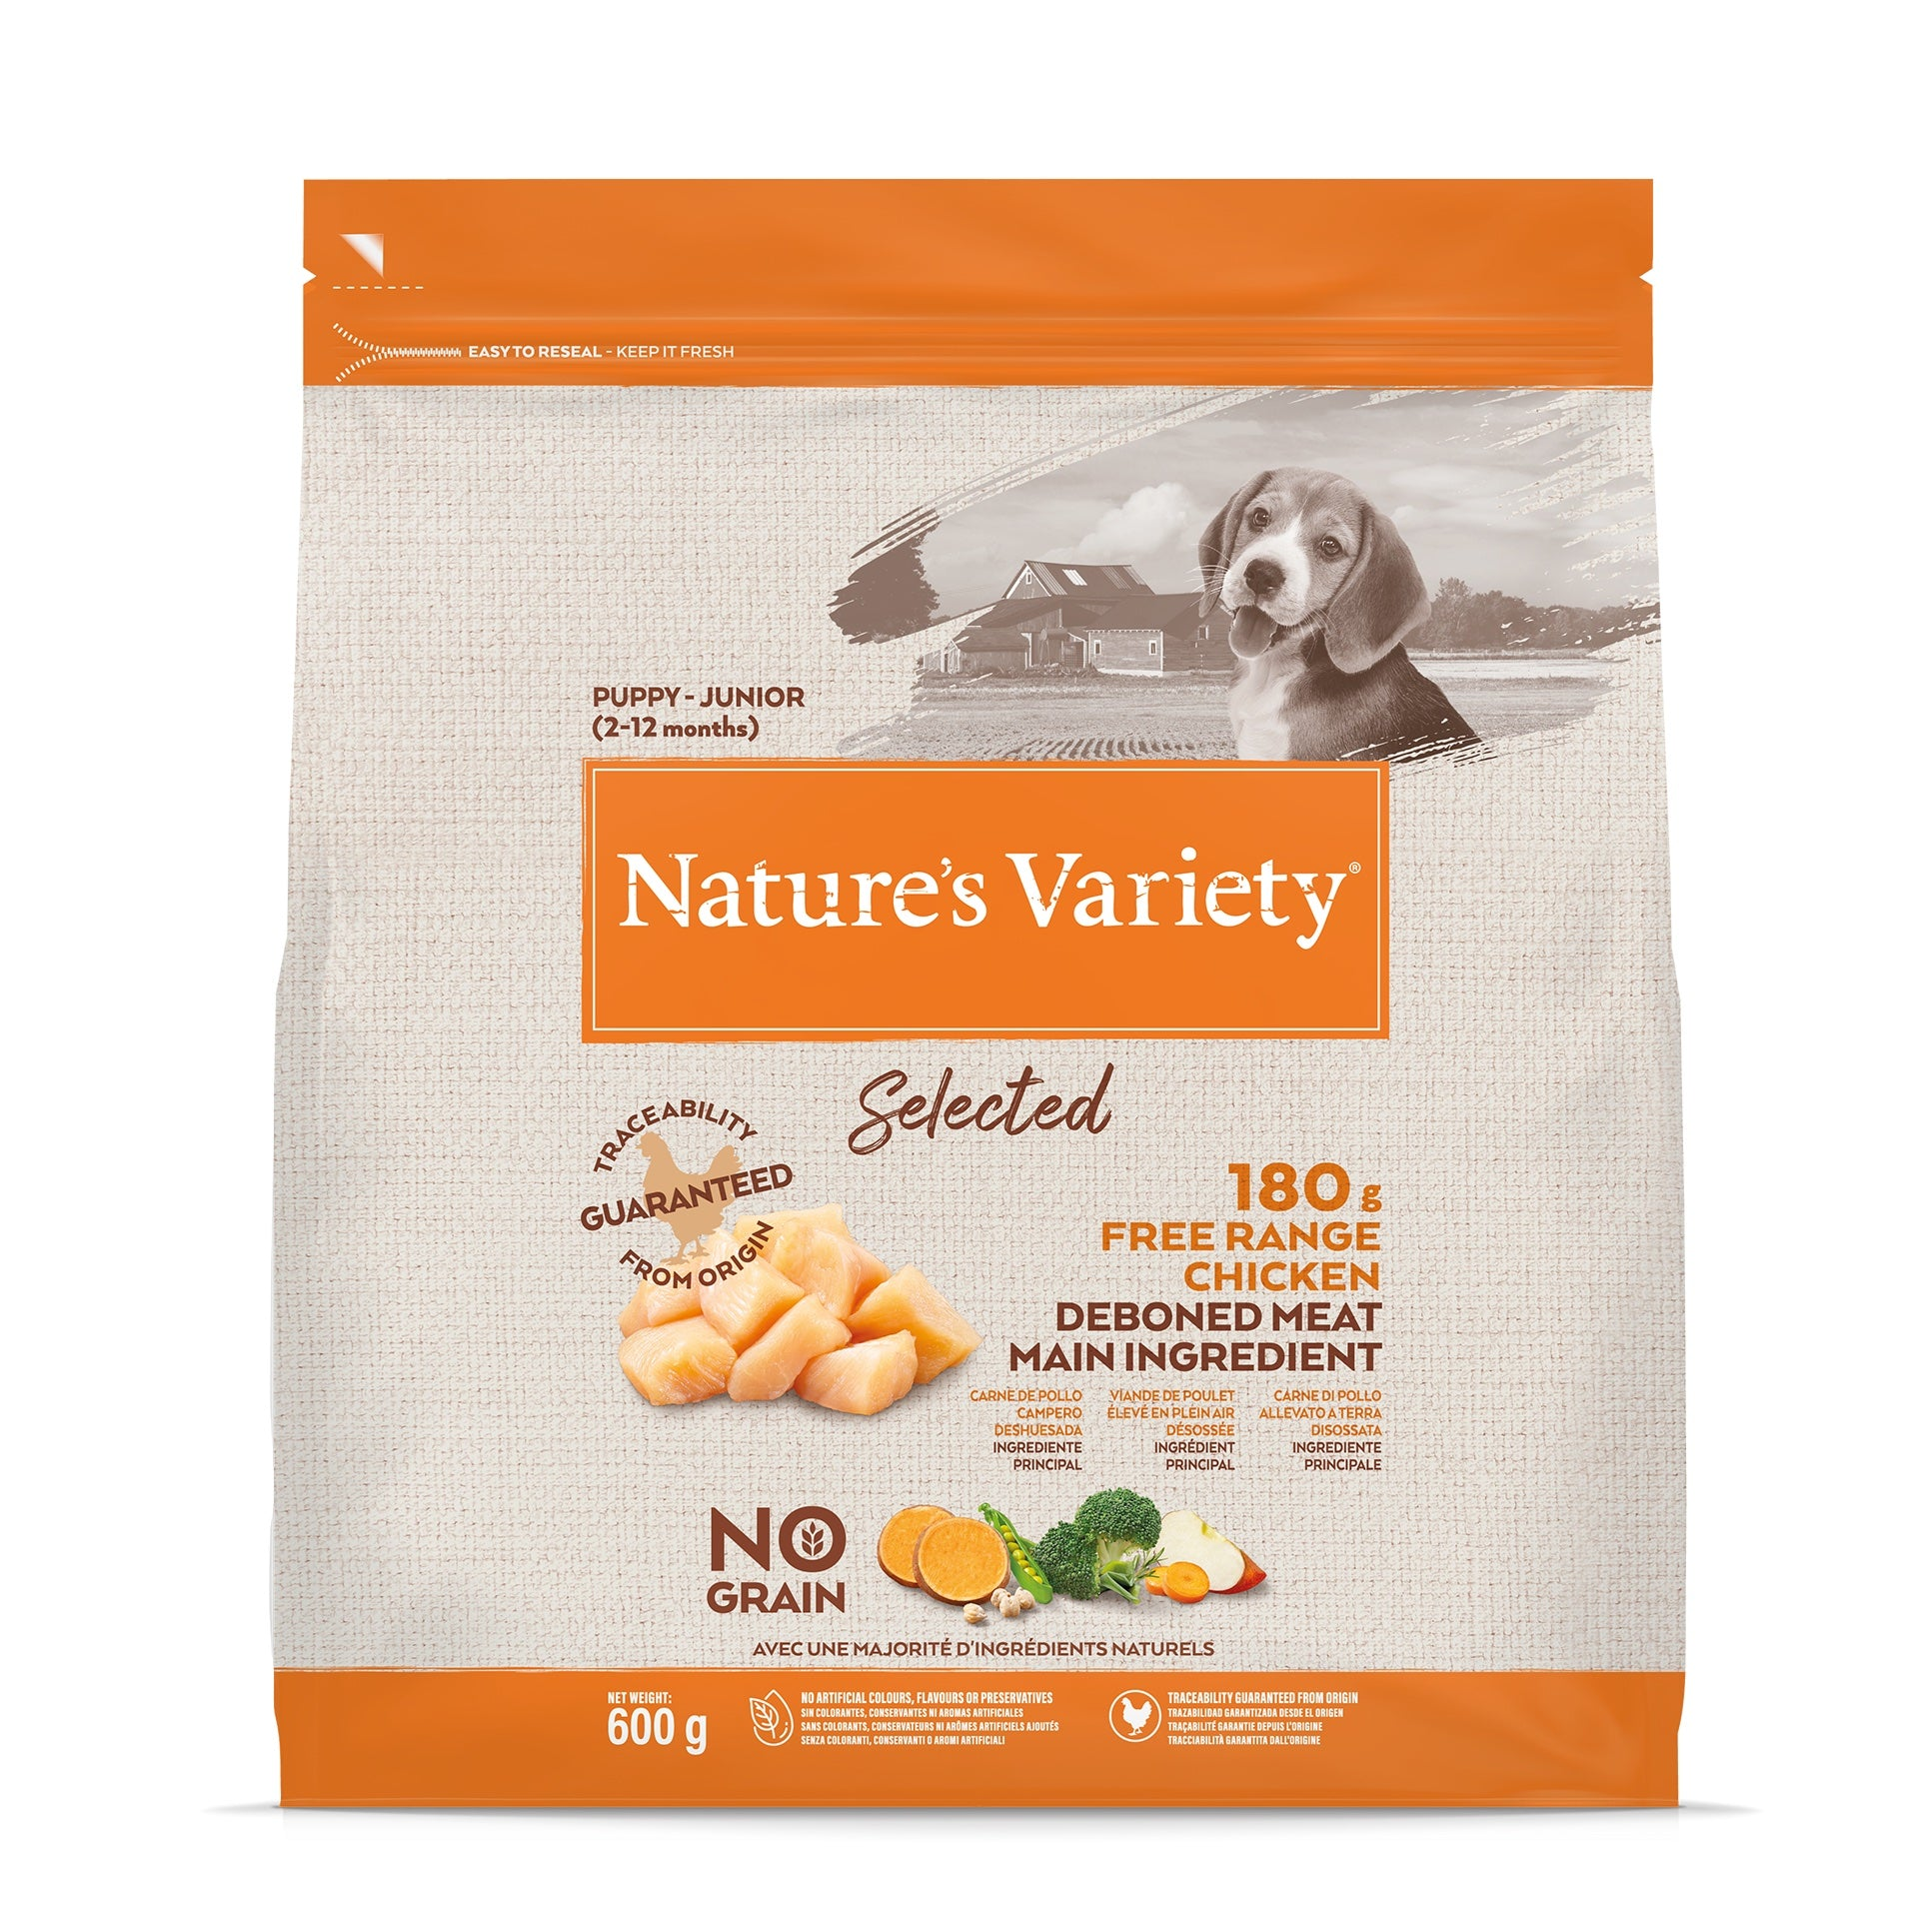 Natures Variety Selected Chicken Puppy/Junior